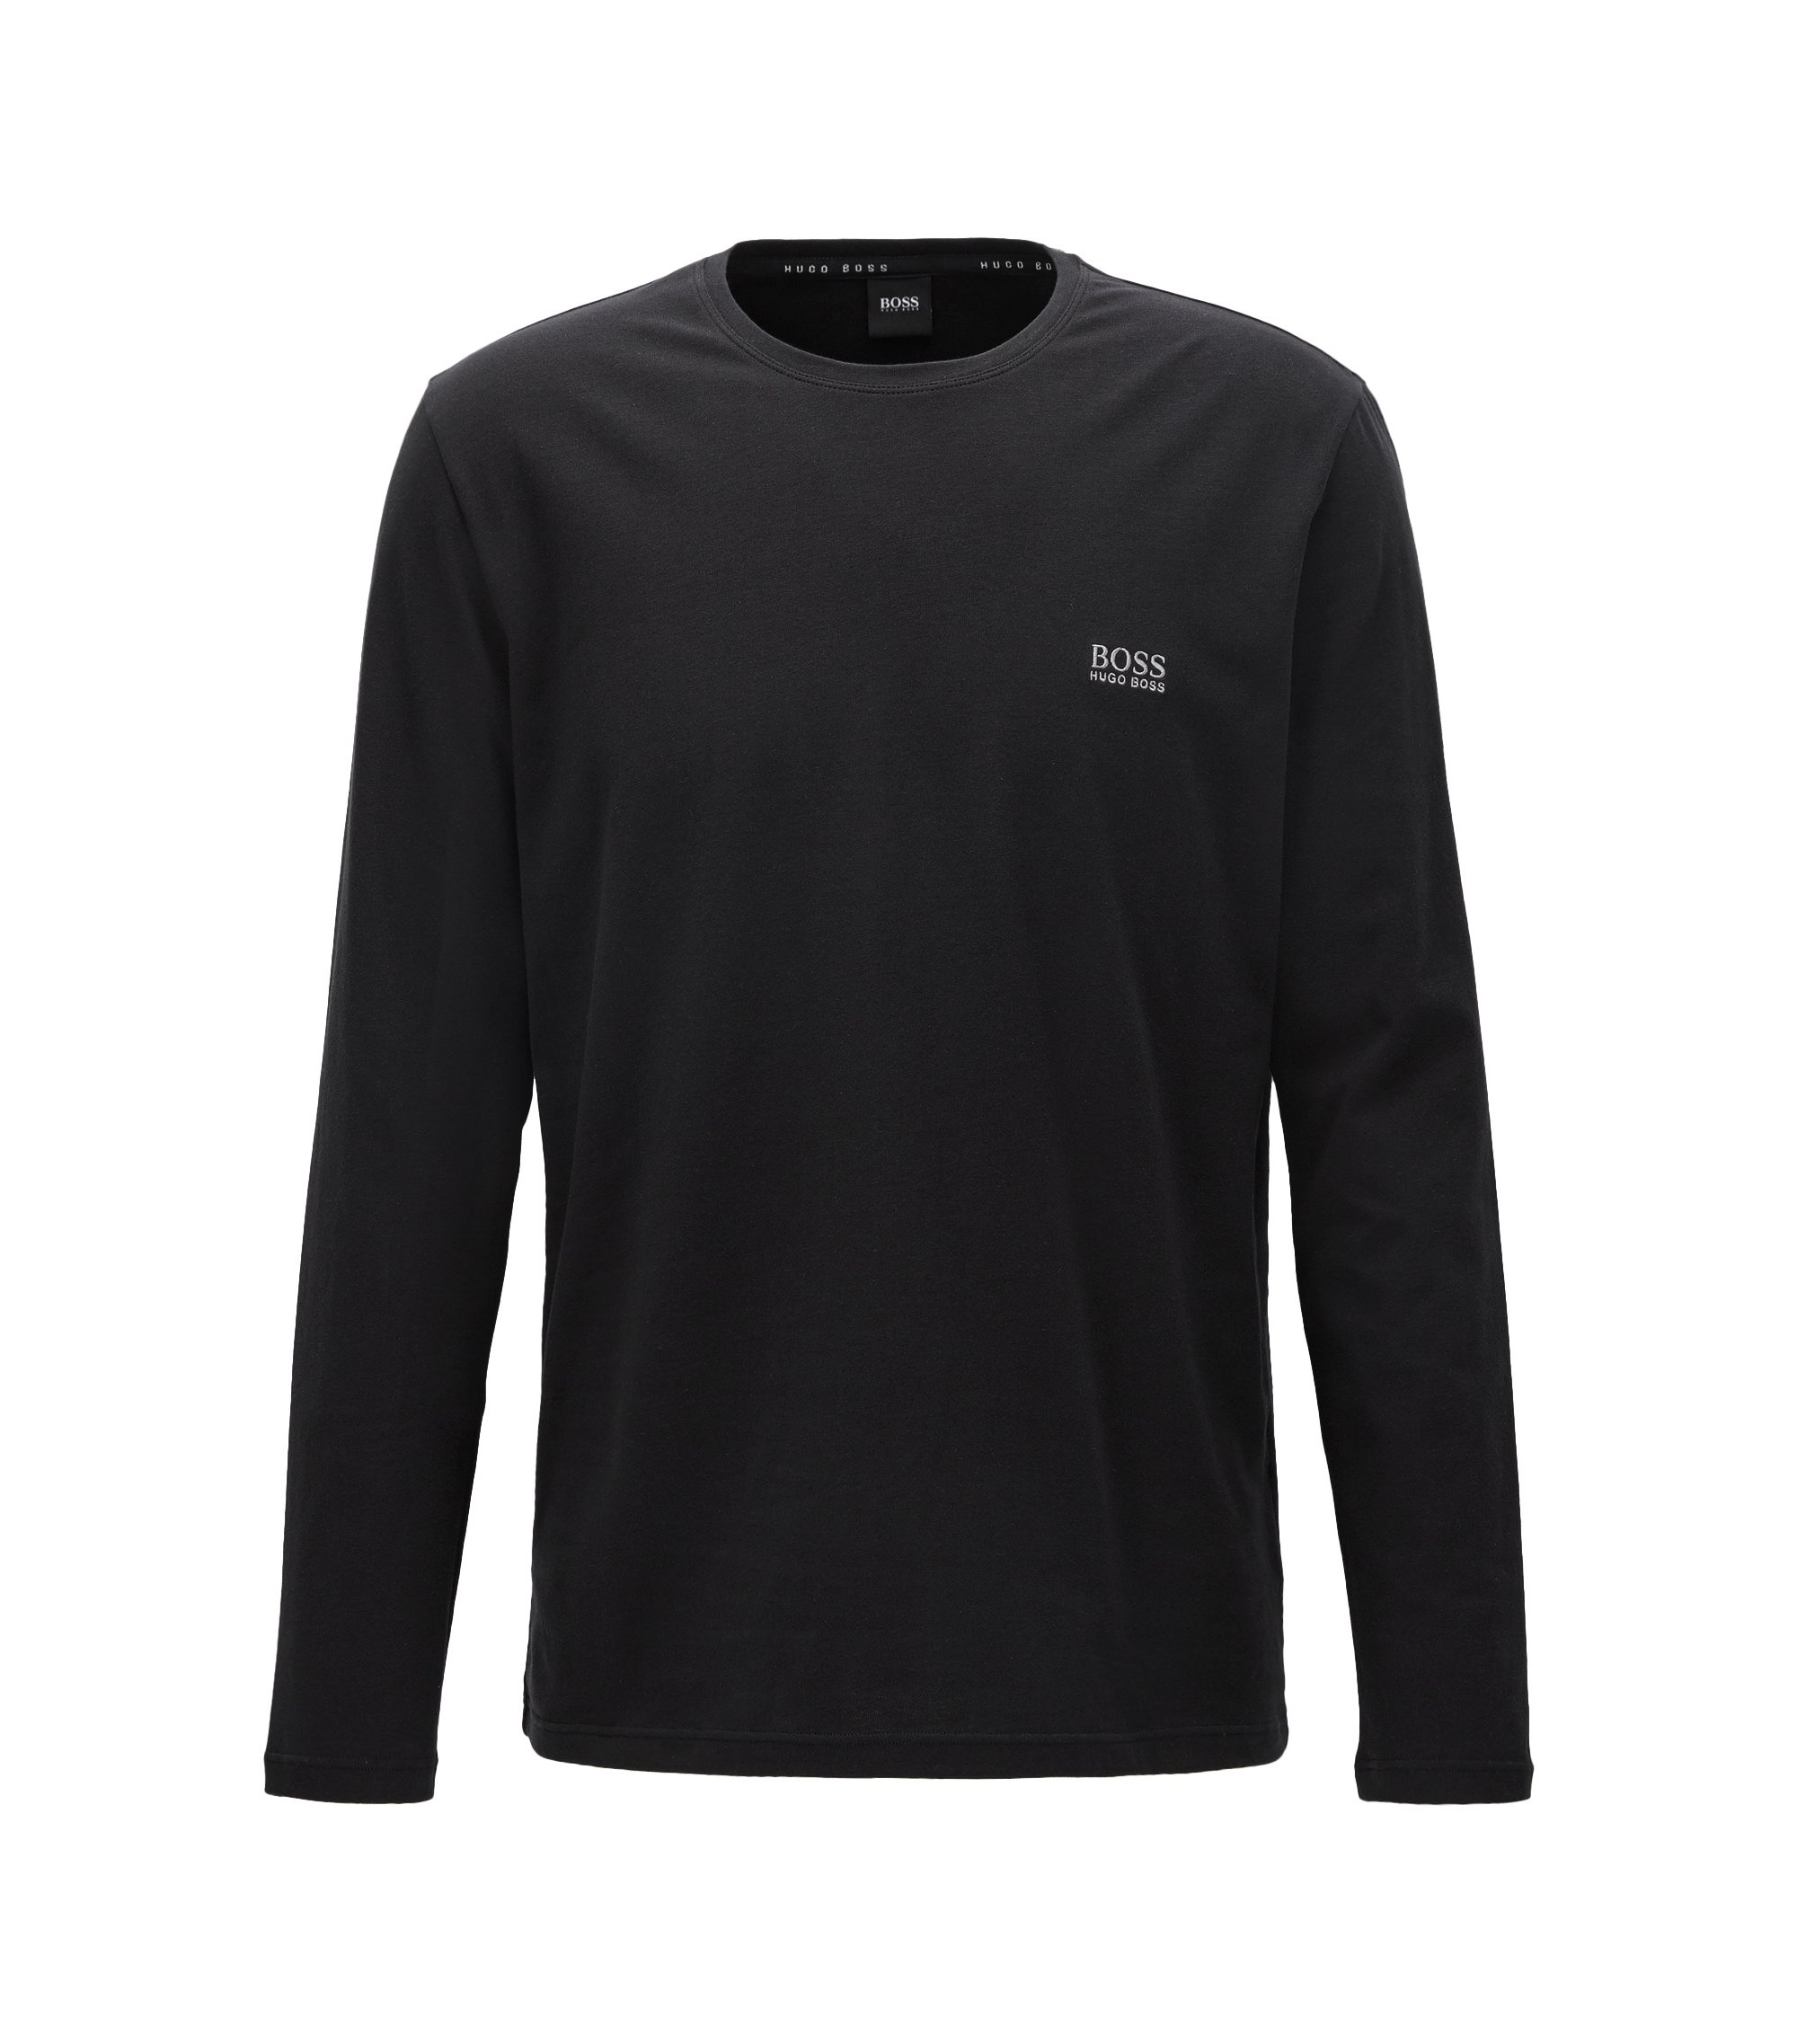 Long-sleeved T-shirt in stretch-cotton jersey, Black